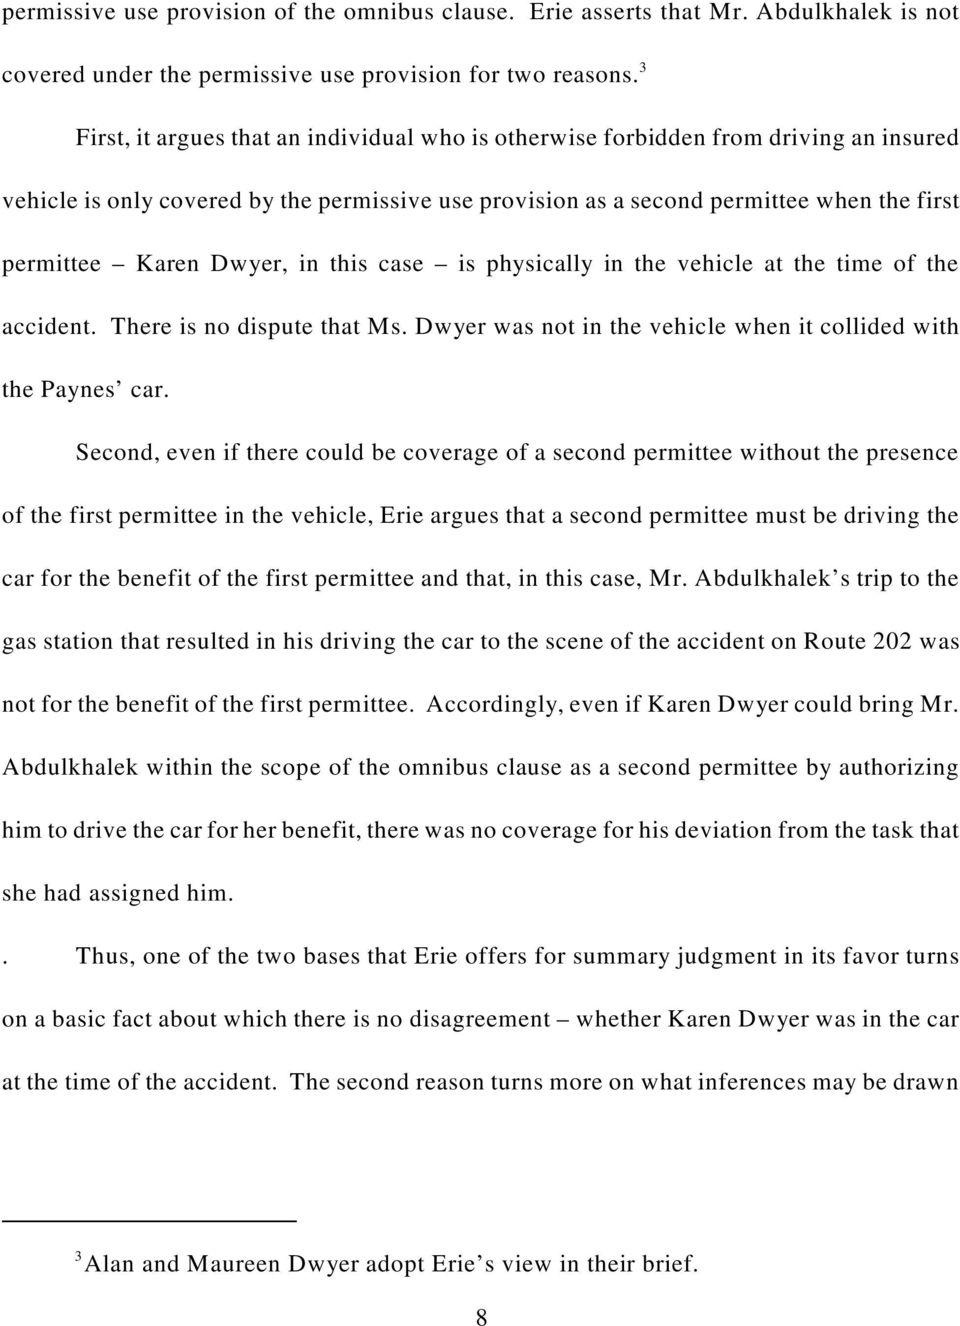 Dwyer, in this case is physically in the vehicle at the time of the accident. There is no dispute that Ms. Dwyer was not in the vehicle when it collided with the Paynes car.